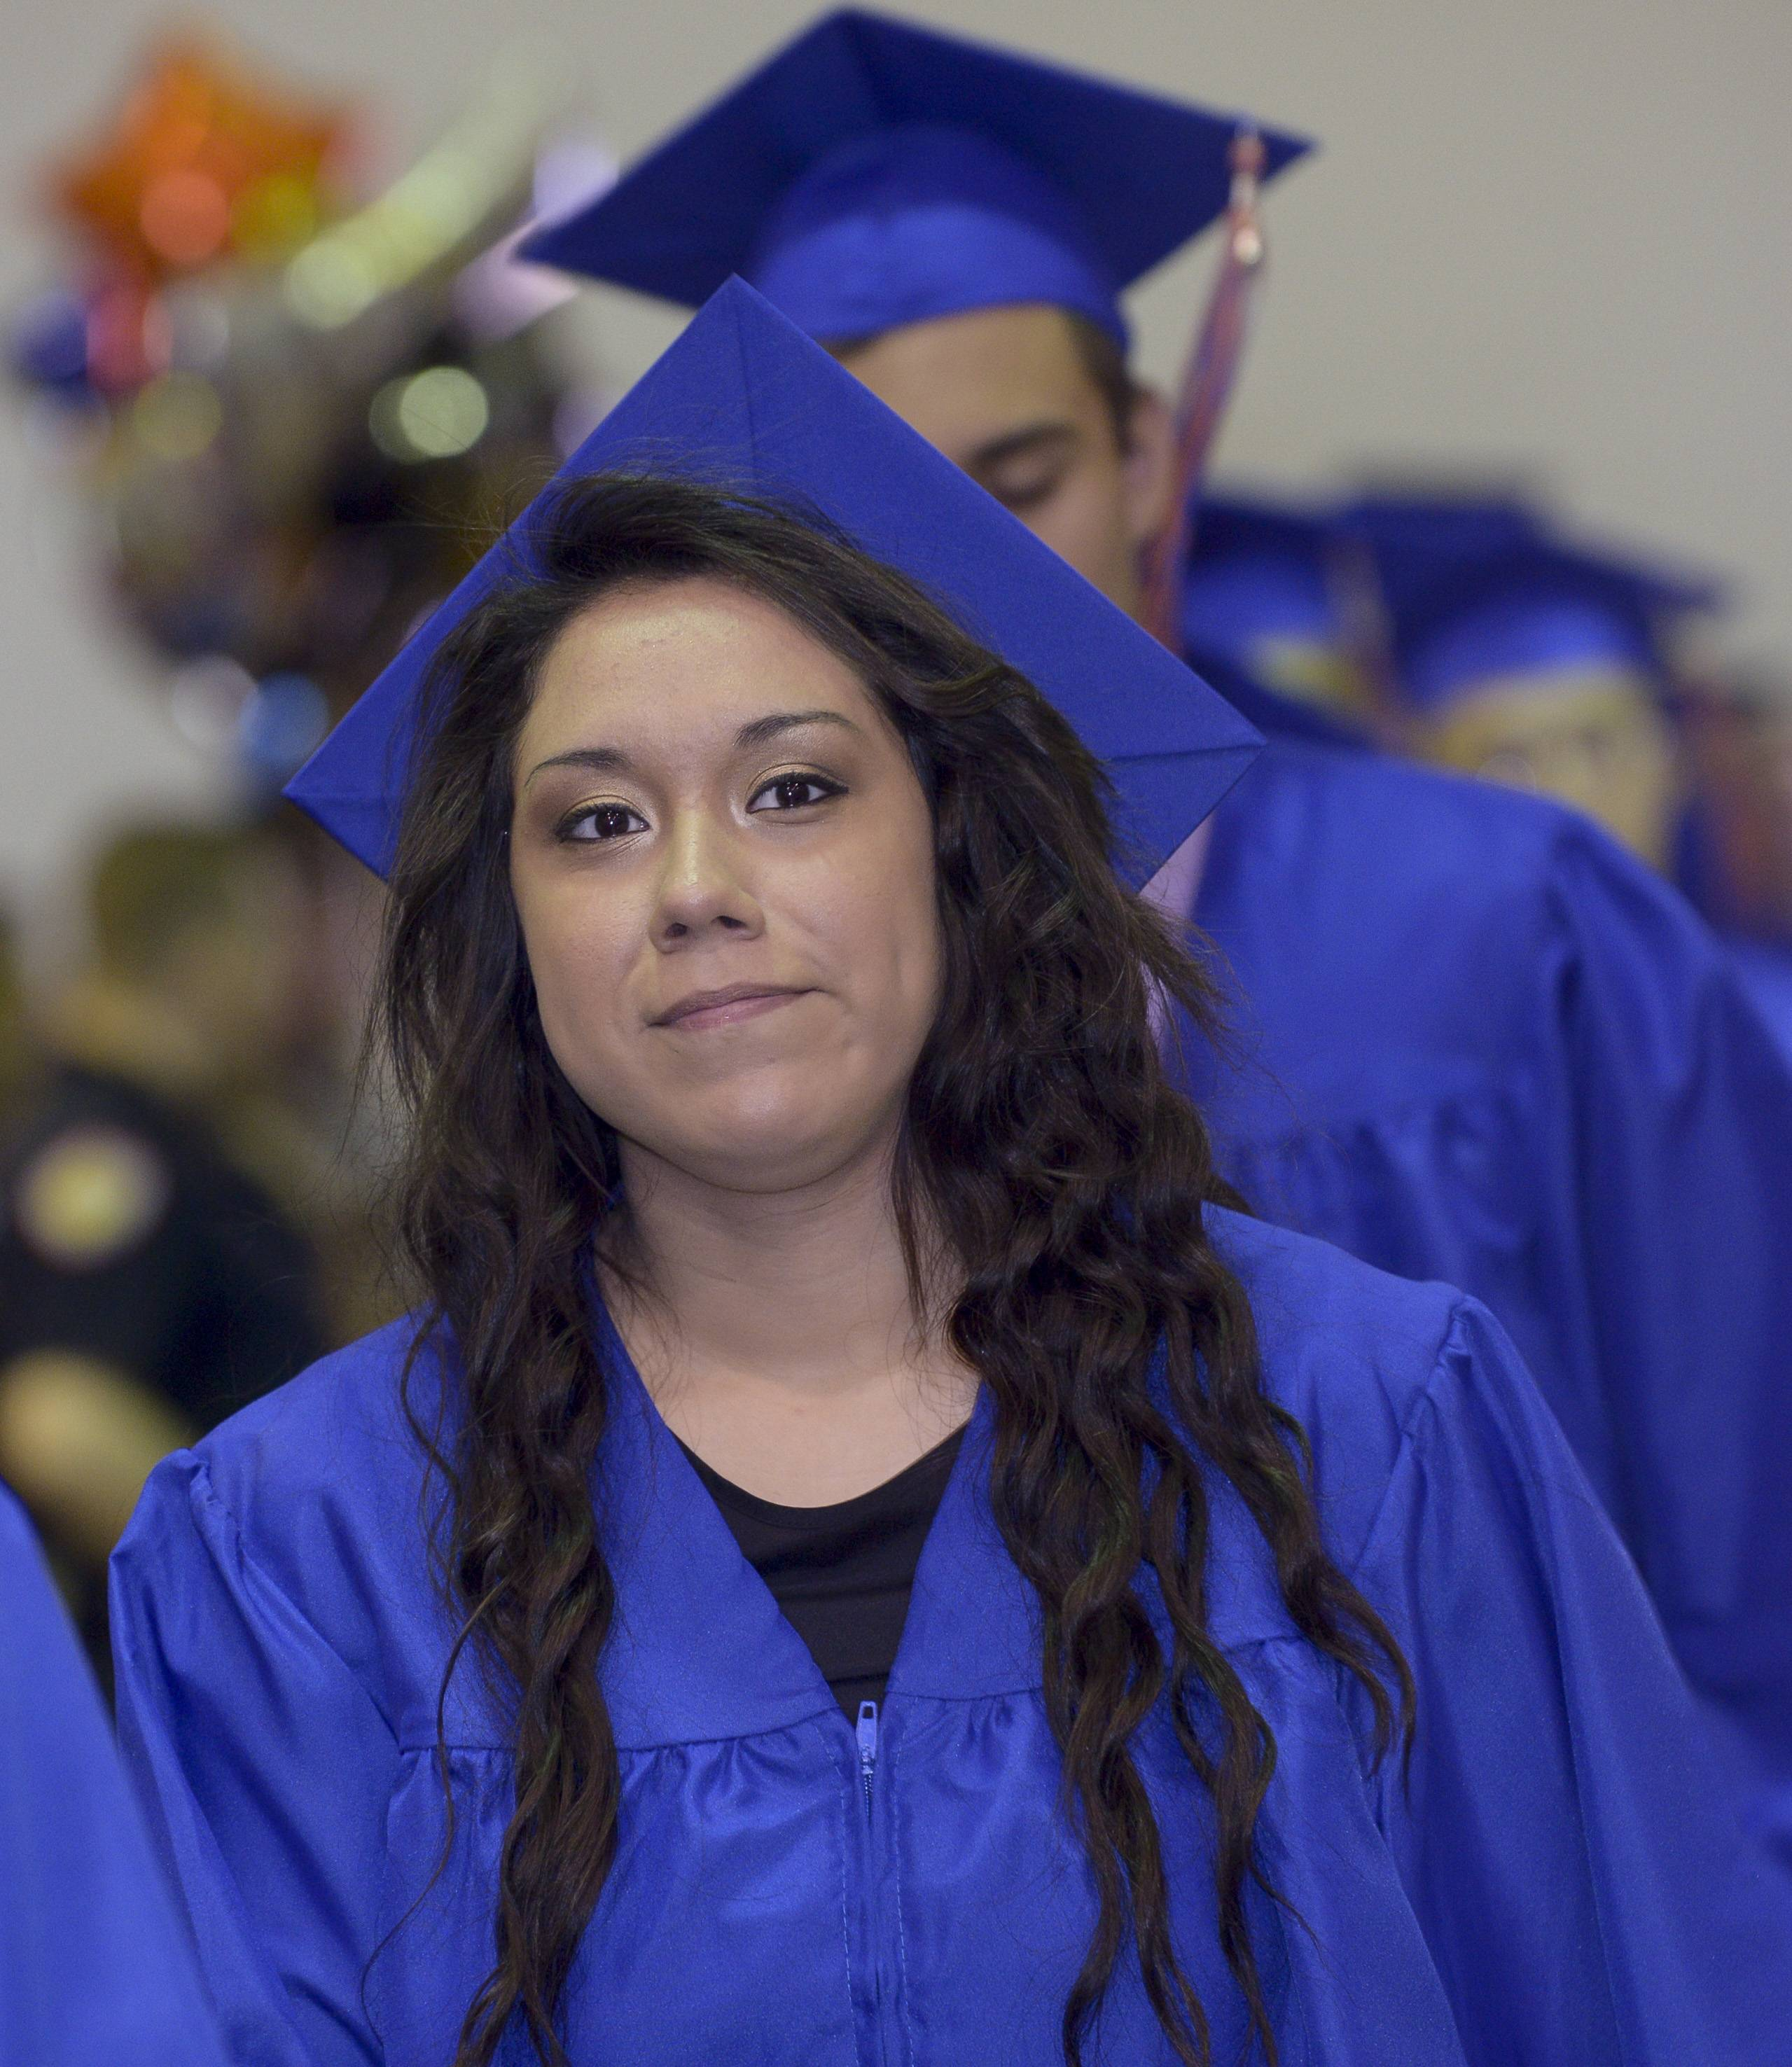 Fenton High School held its graduation Sunday, May 18 at Fenton in Bensenville.